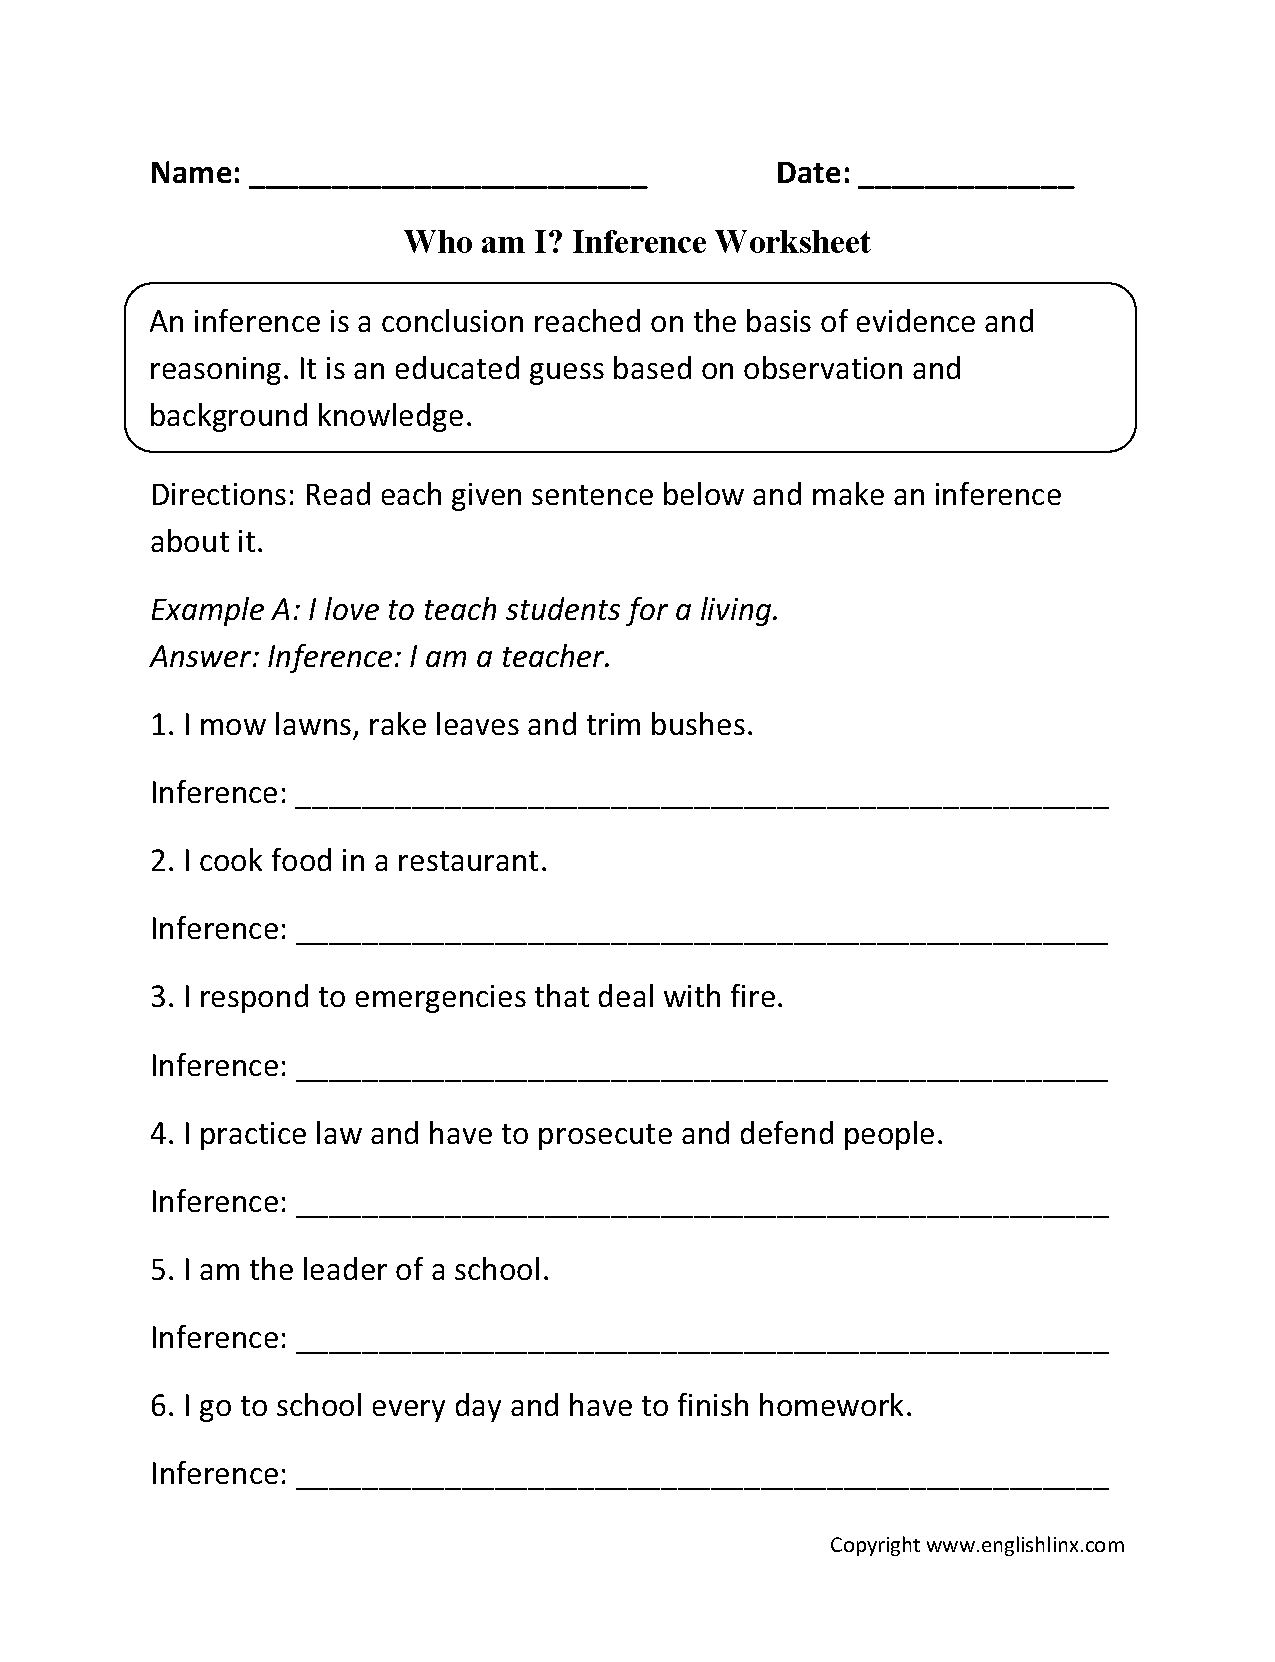 Who Am I Inference Worksheets Englishlinx Com Board Inference